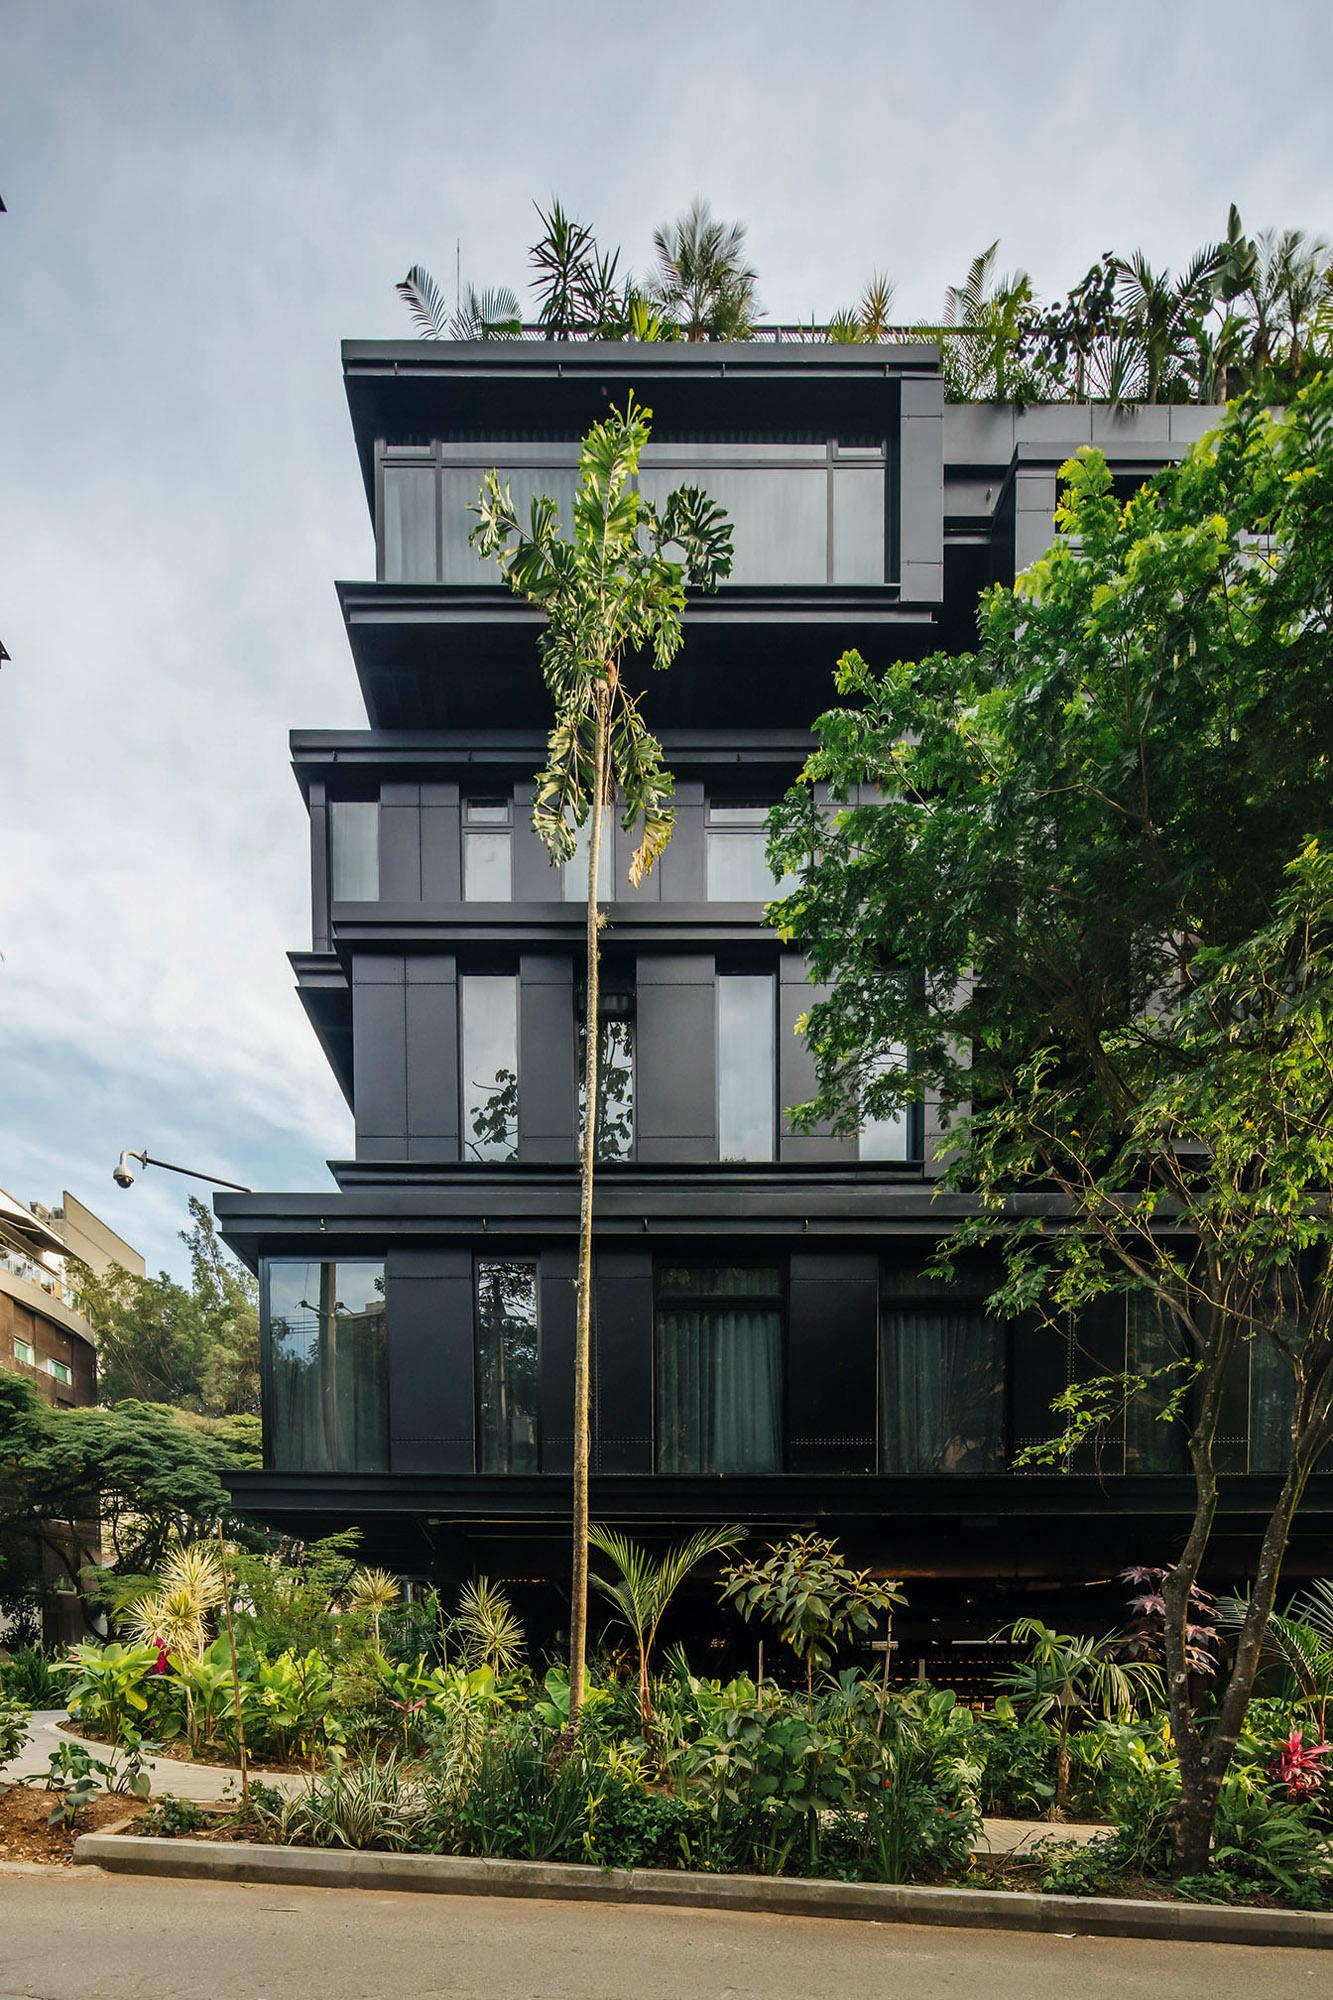 Medellin's click clack hotel by Plan B showcases tropical modernism